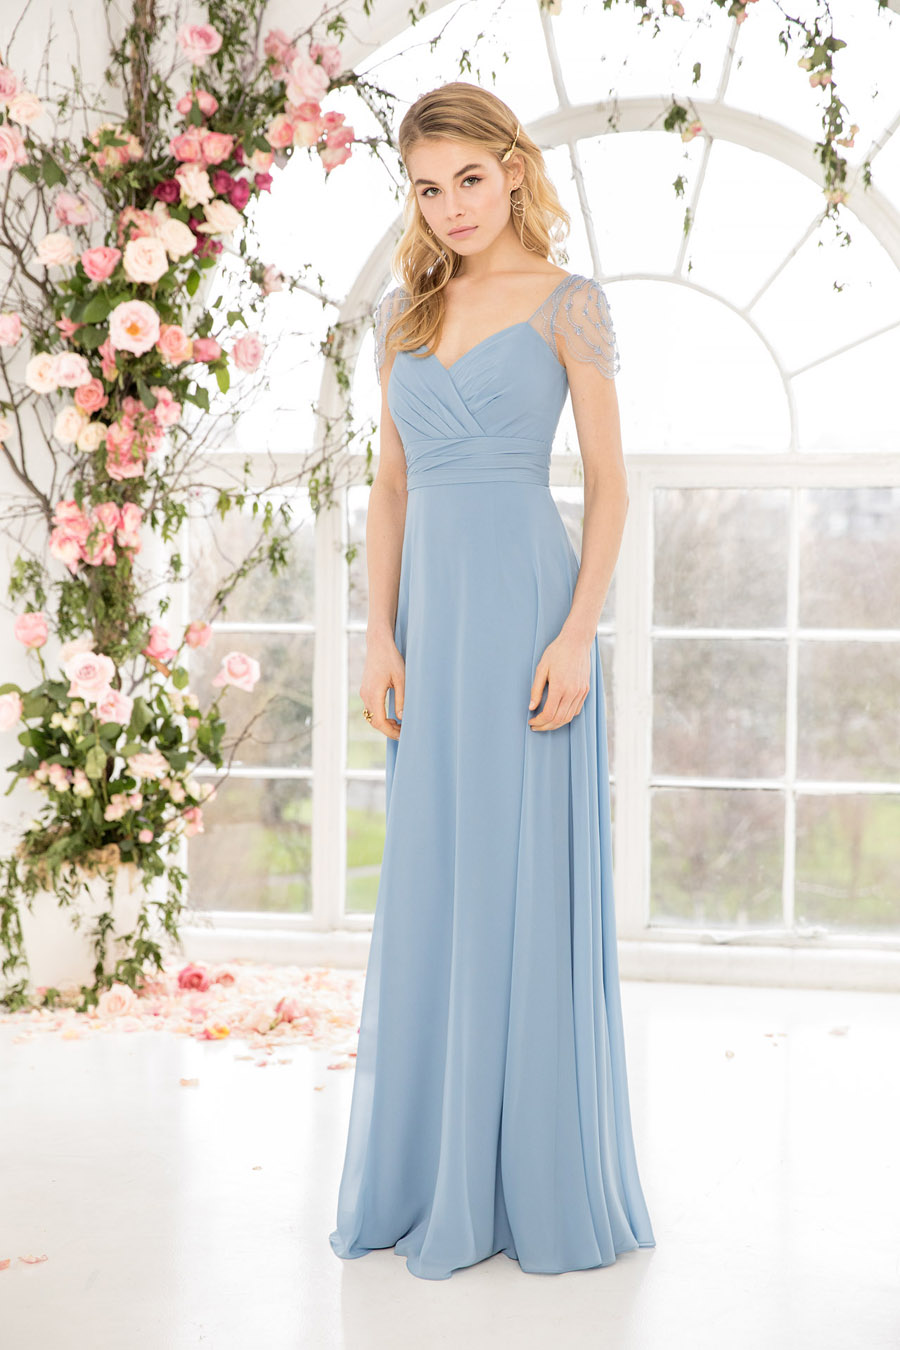 The English Wedding Blog showcases Kelsey Rose bridesmaids dresses for 2019 in dusty pink, pastel yellow and blue and more (27)